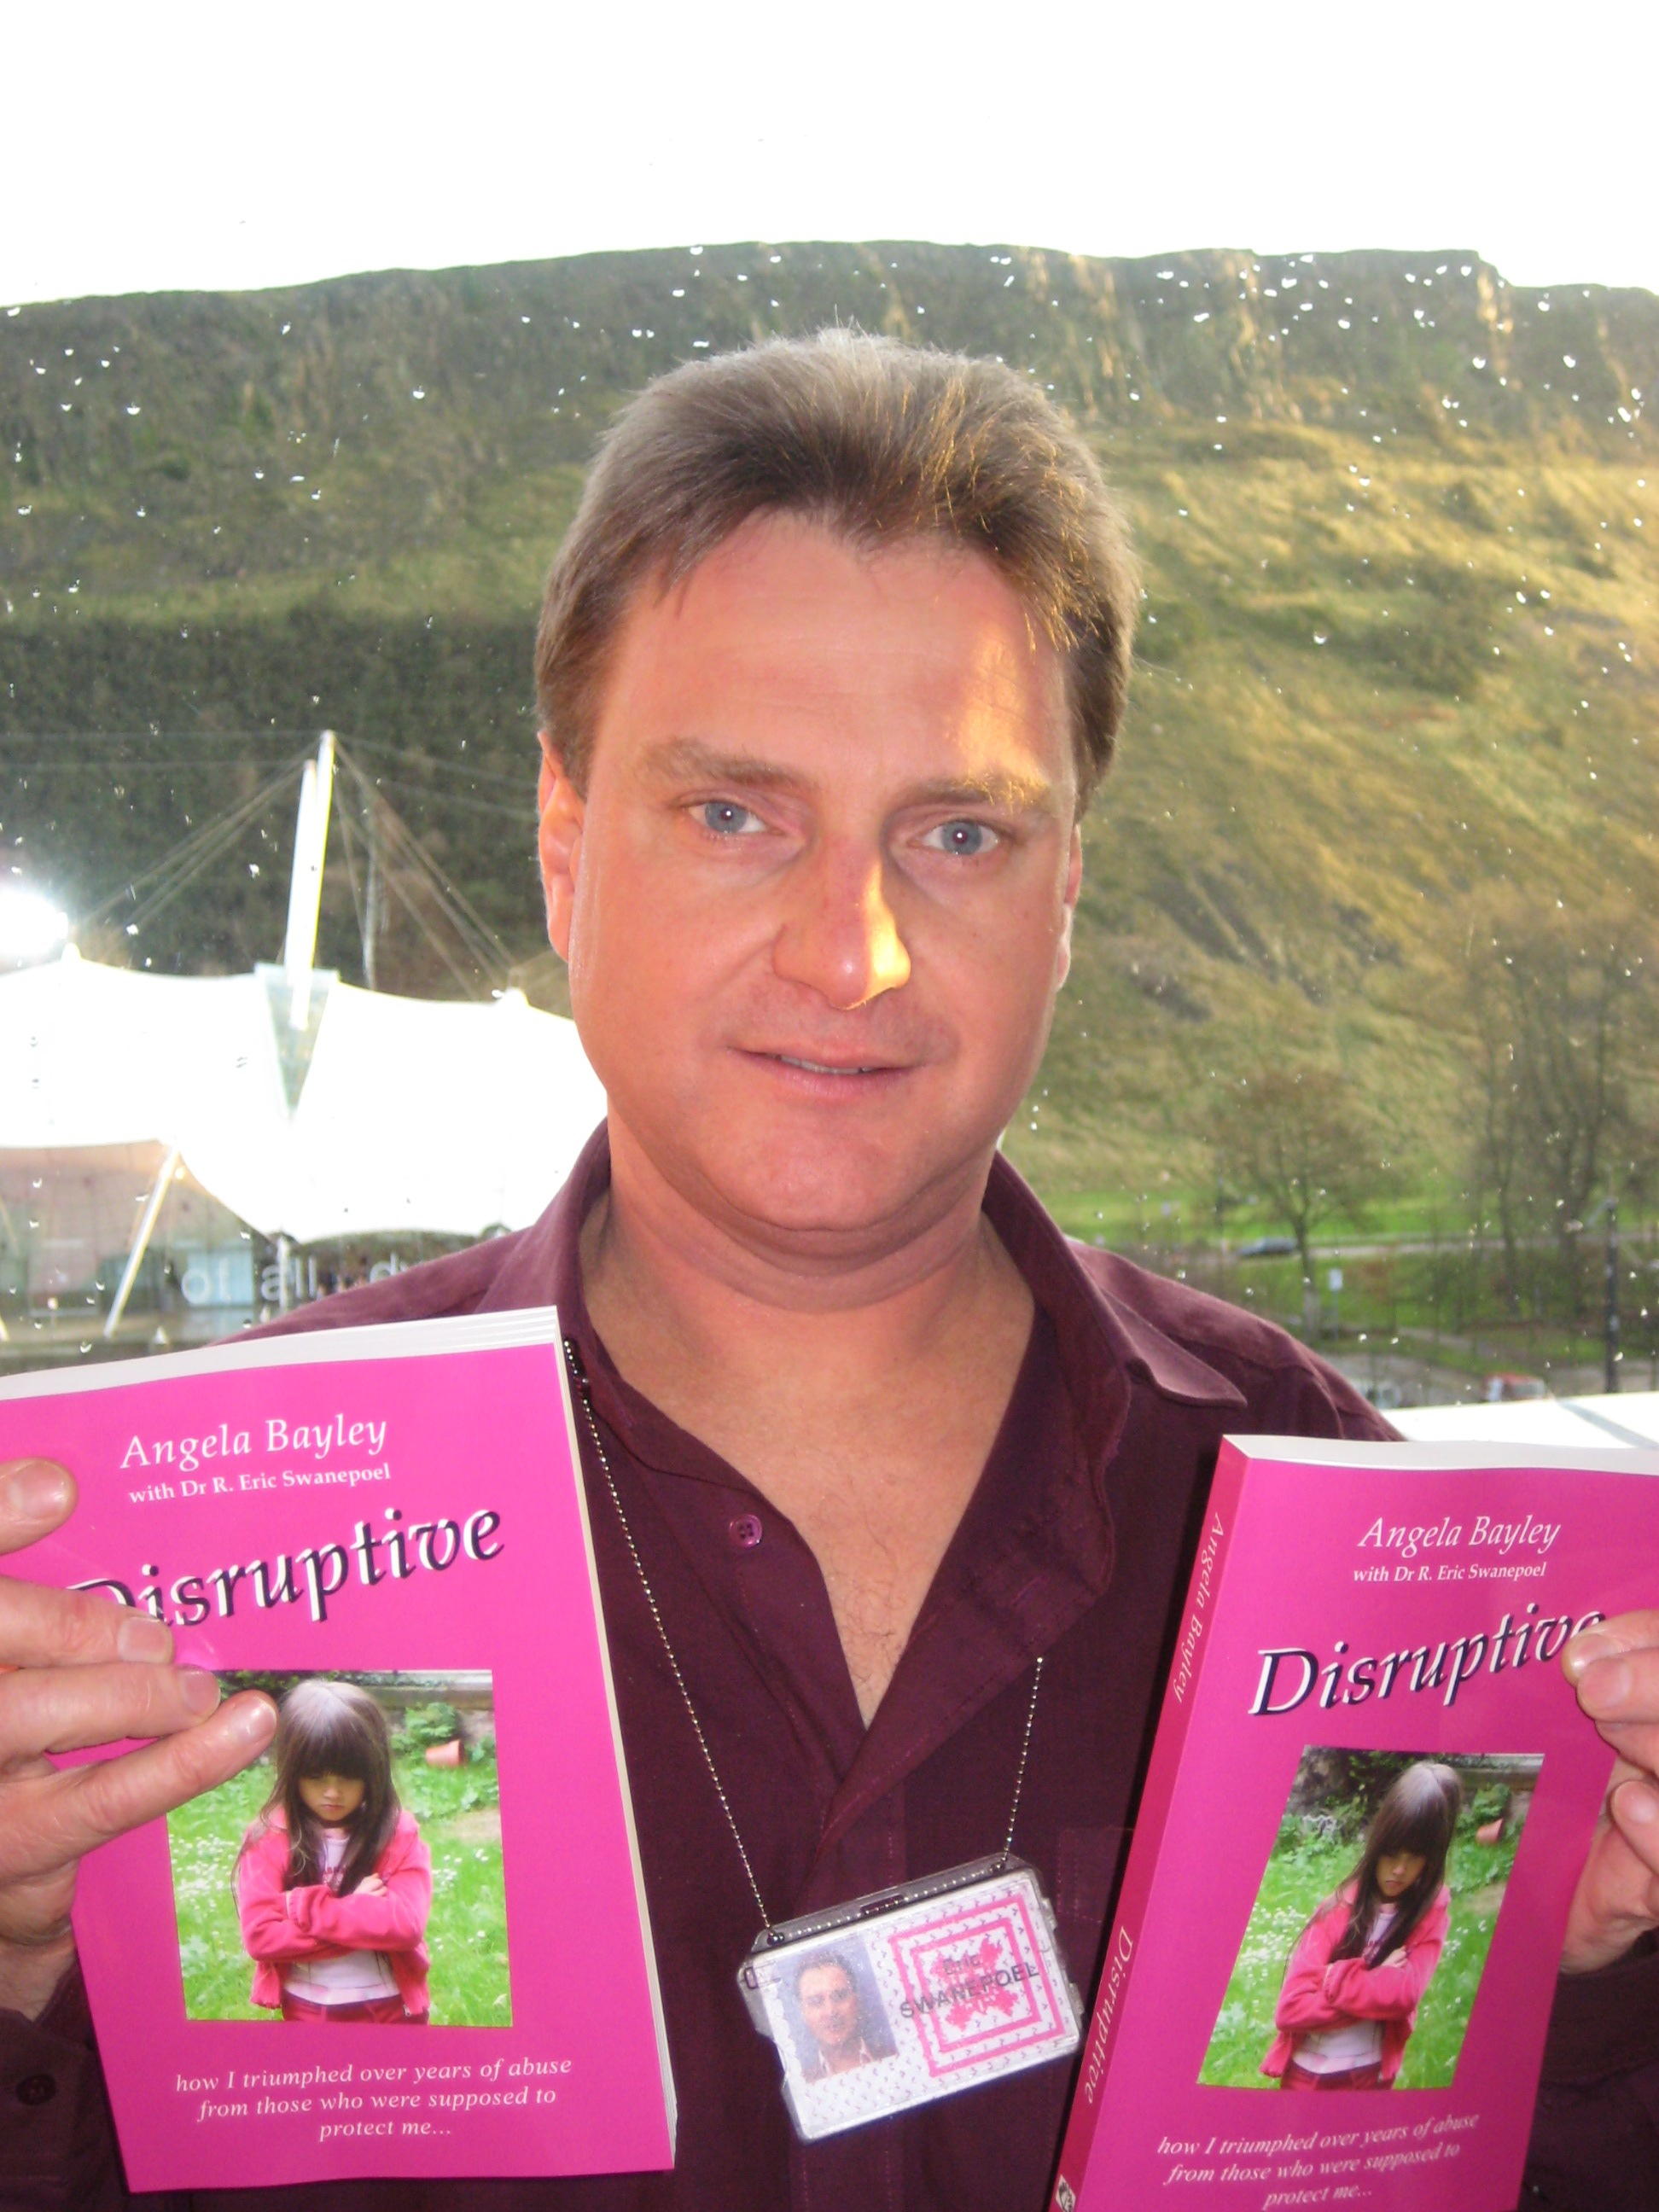 Eric, having just taken delivery of the first copies of 'Disruptive' from the printers